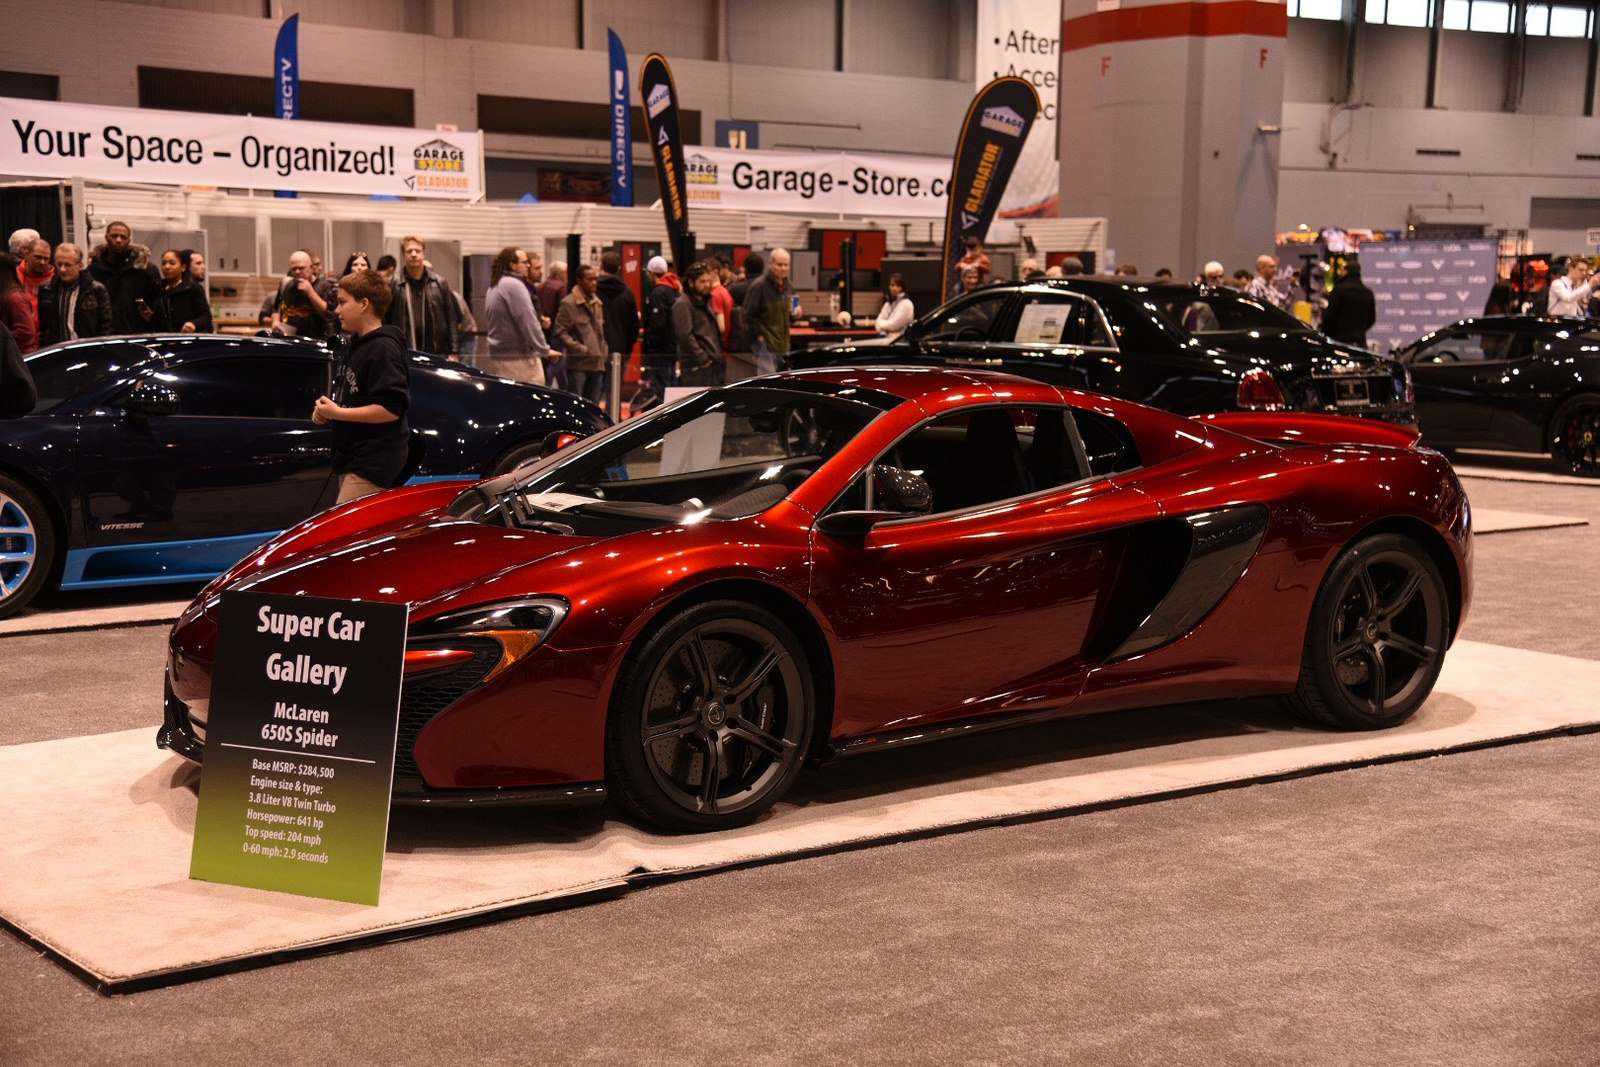 super car gallery6 Supercars at Chicago Auto Show 2016